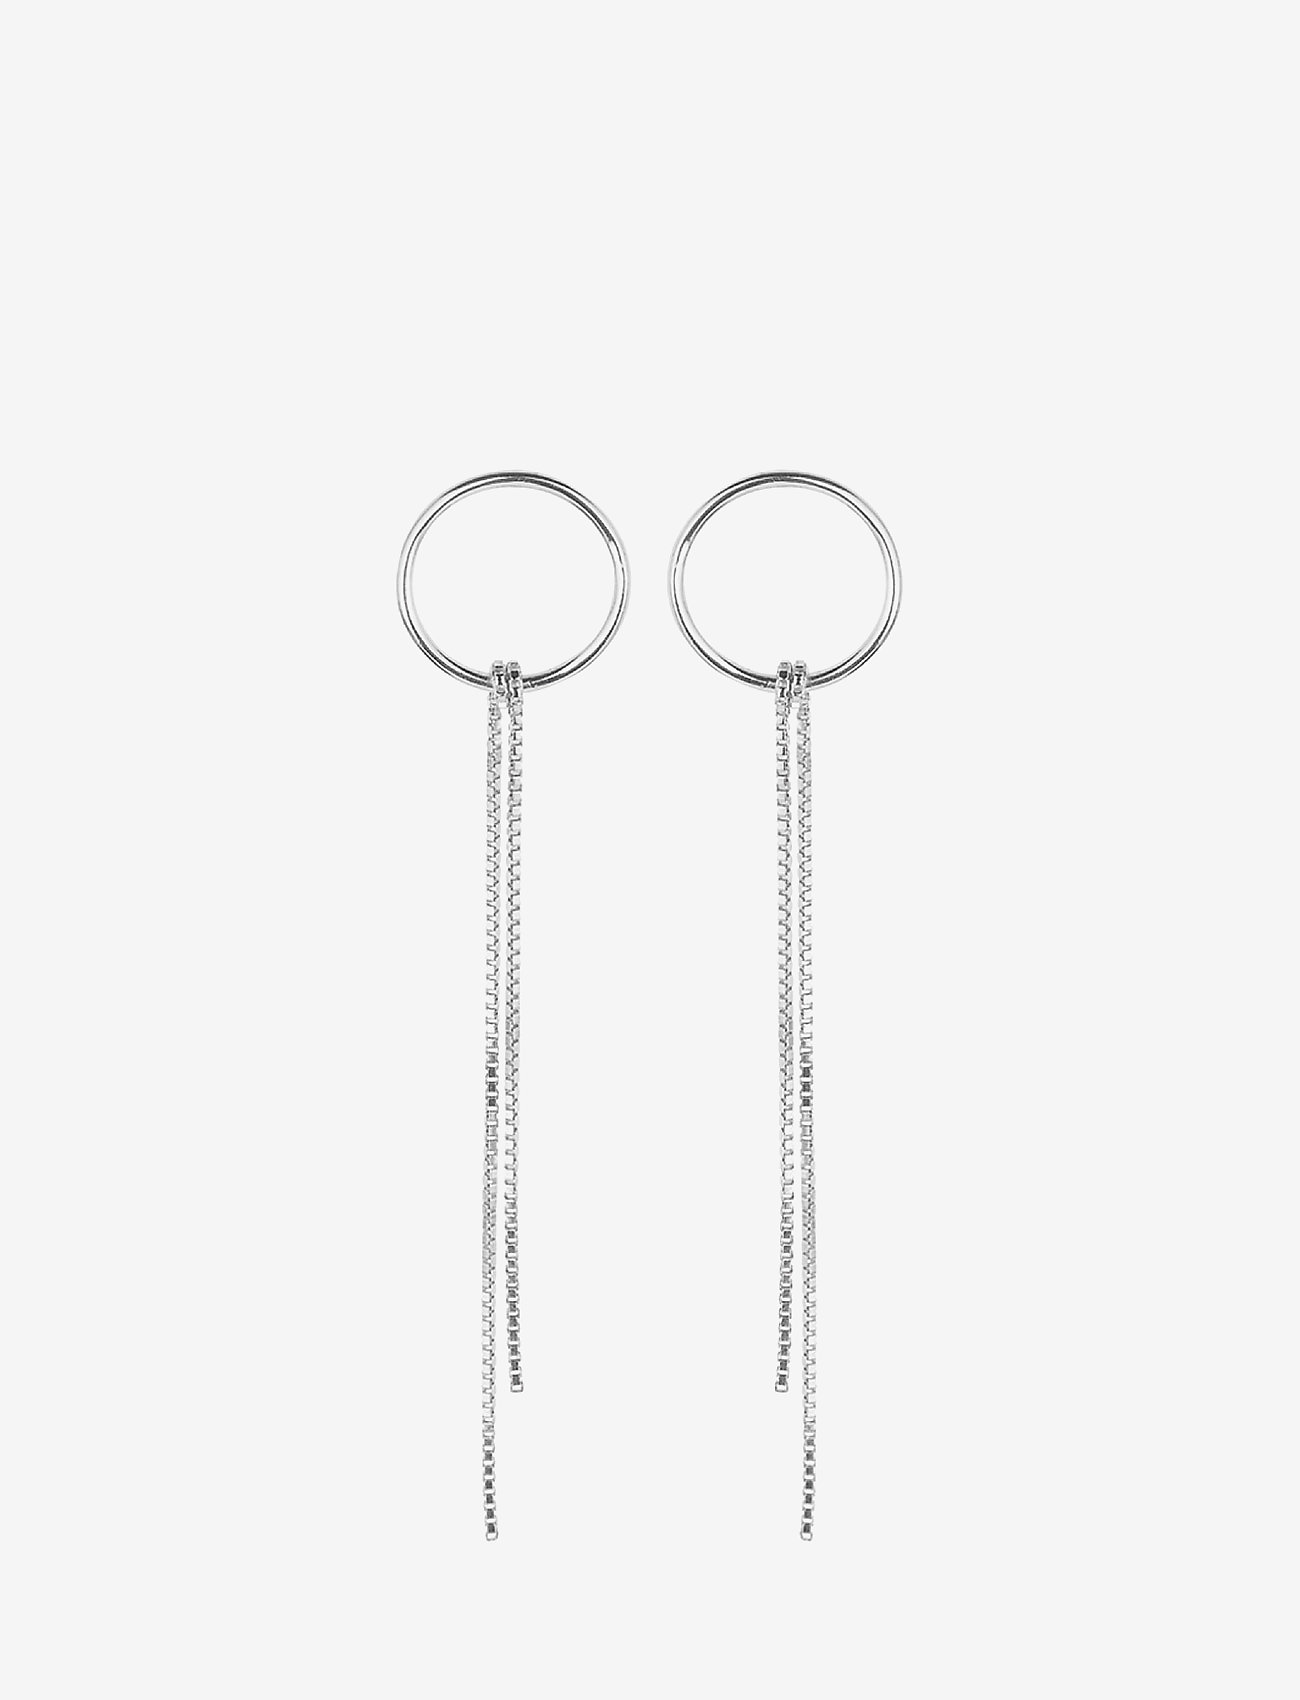 Pernille Corydon - Tango Earsticks  size 14 mm - statement earrings - silver - 0